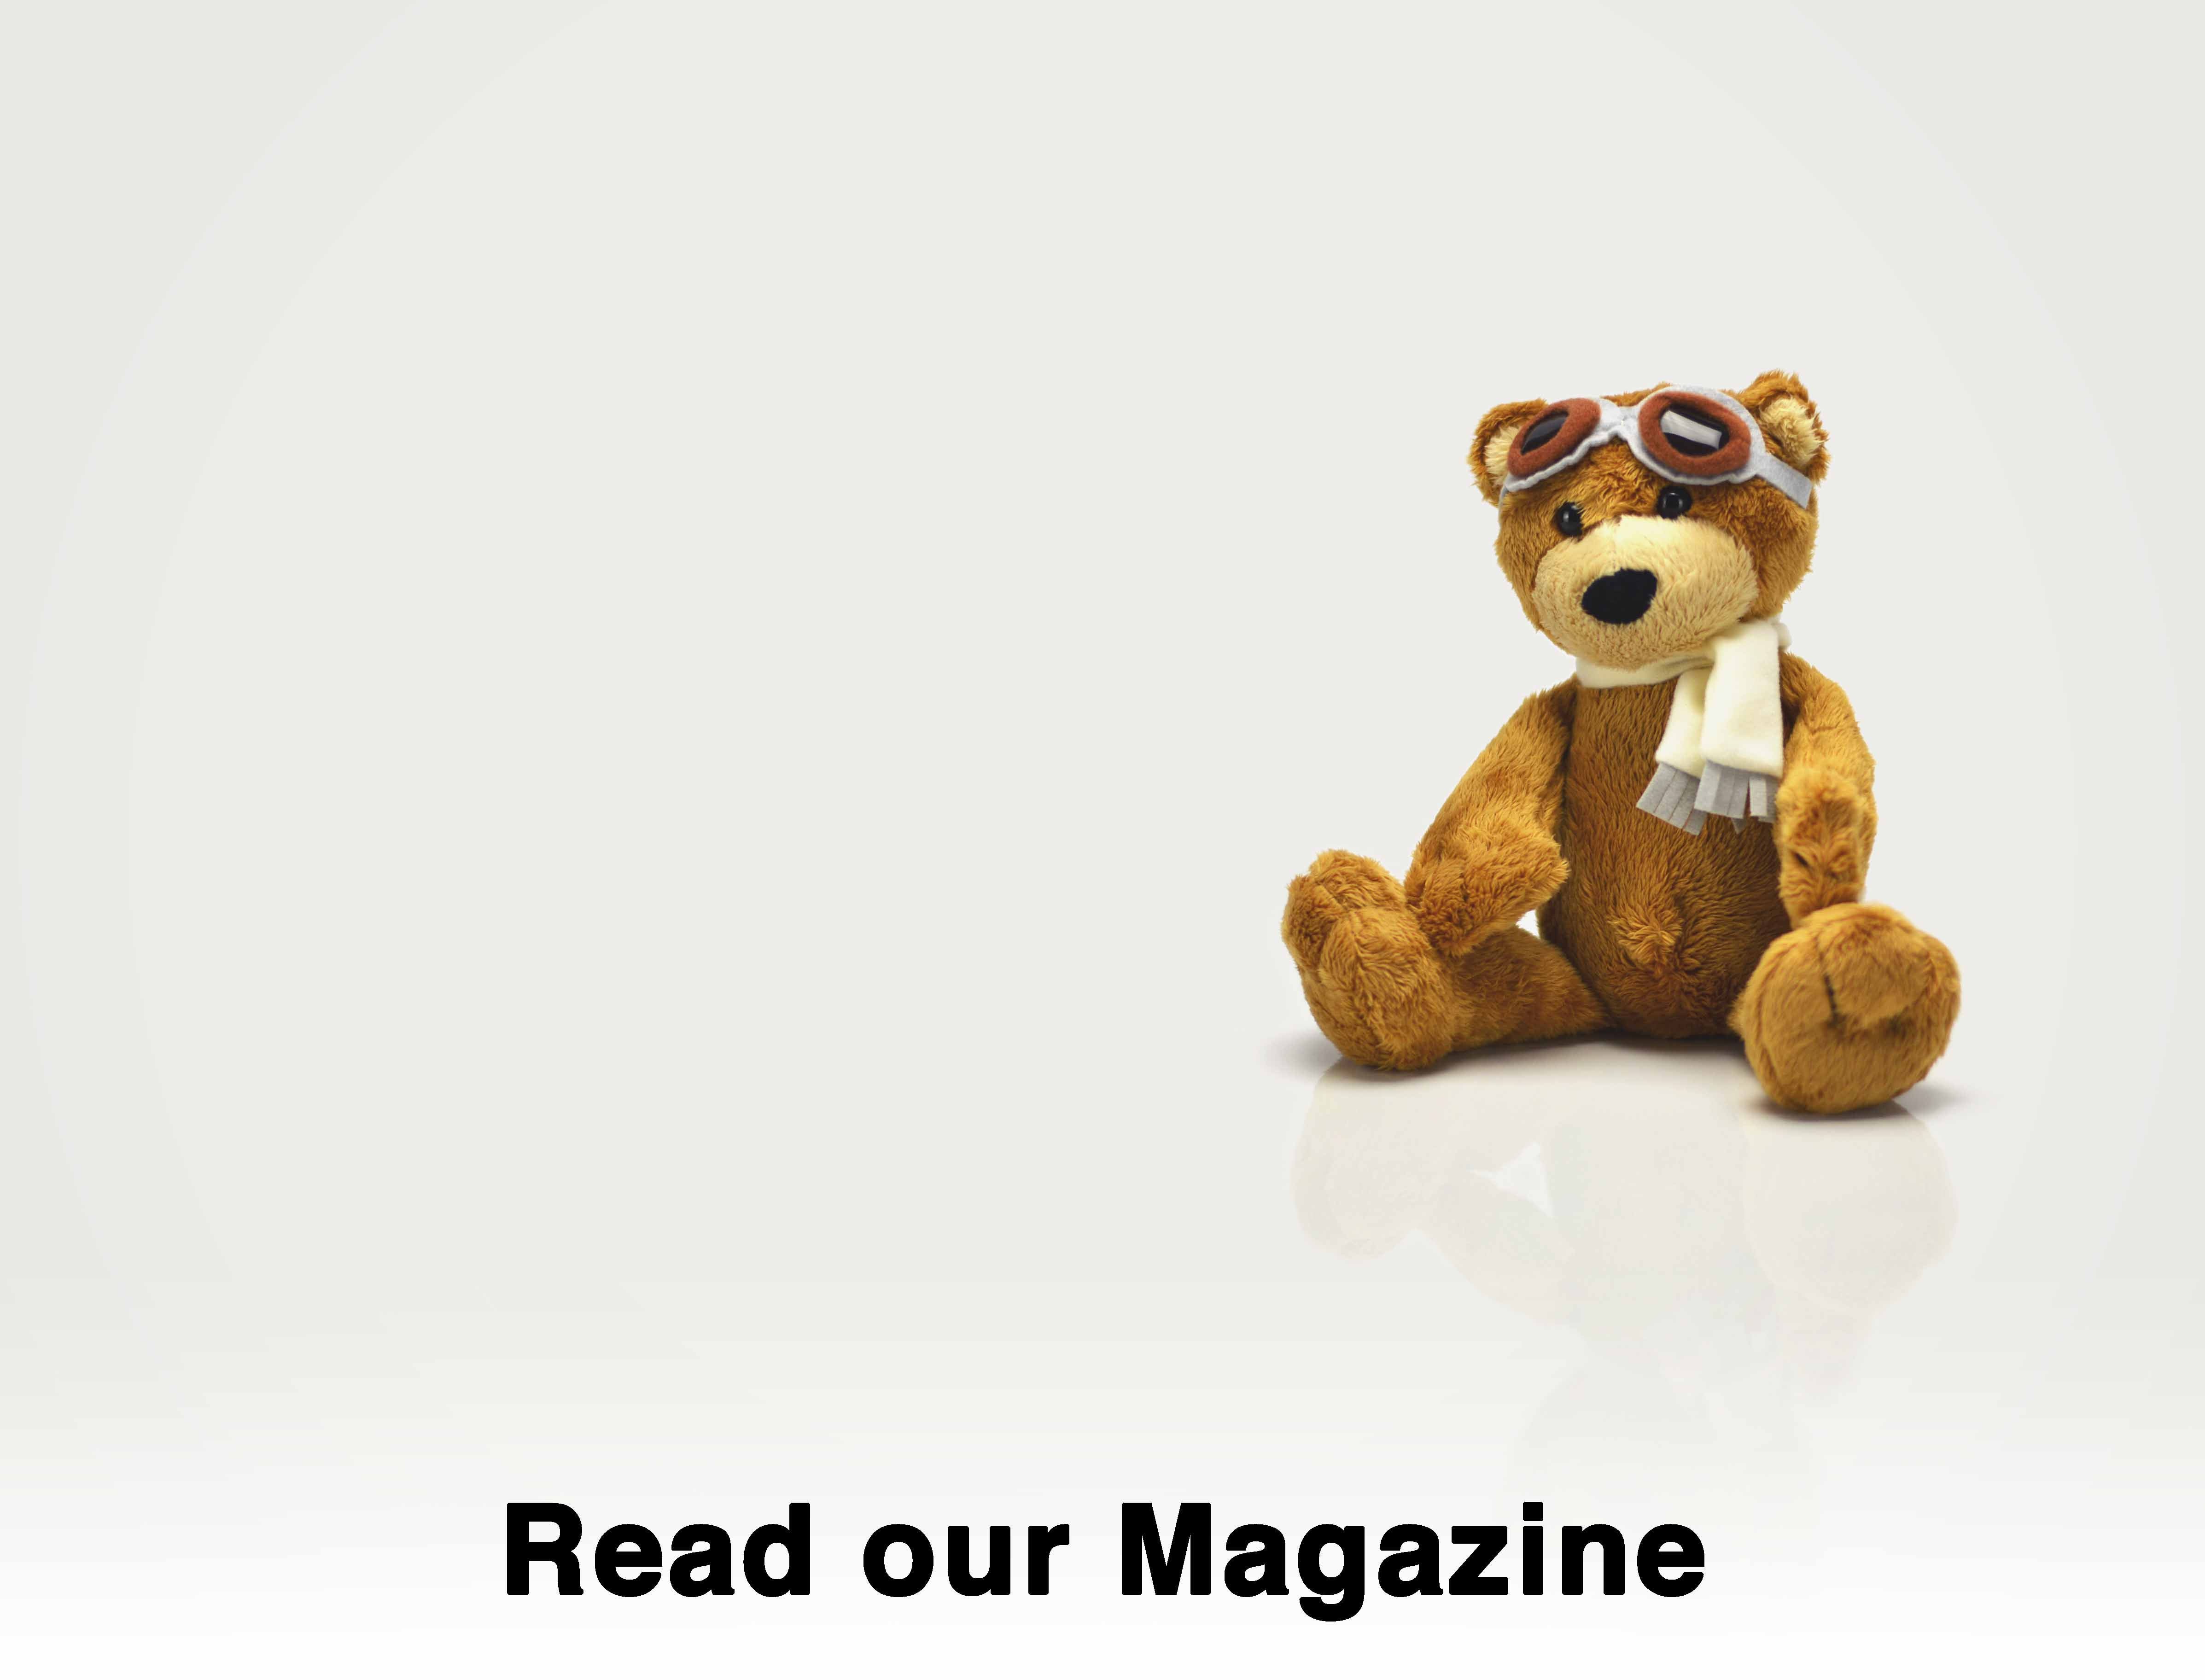 PPL/IR - Europe read our magazine